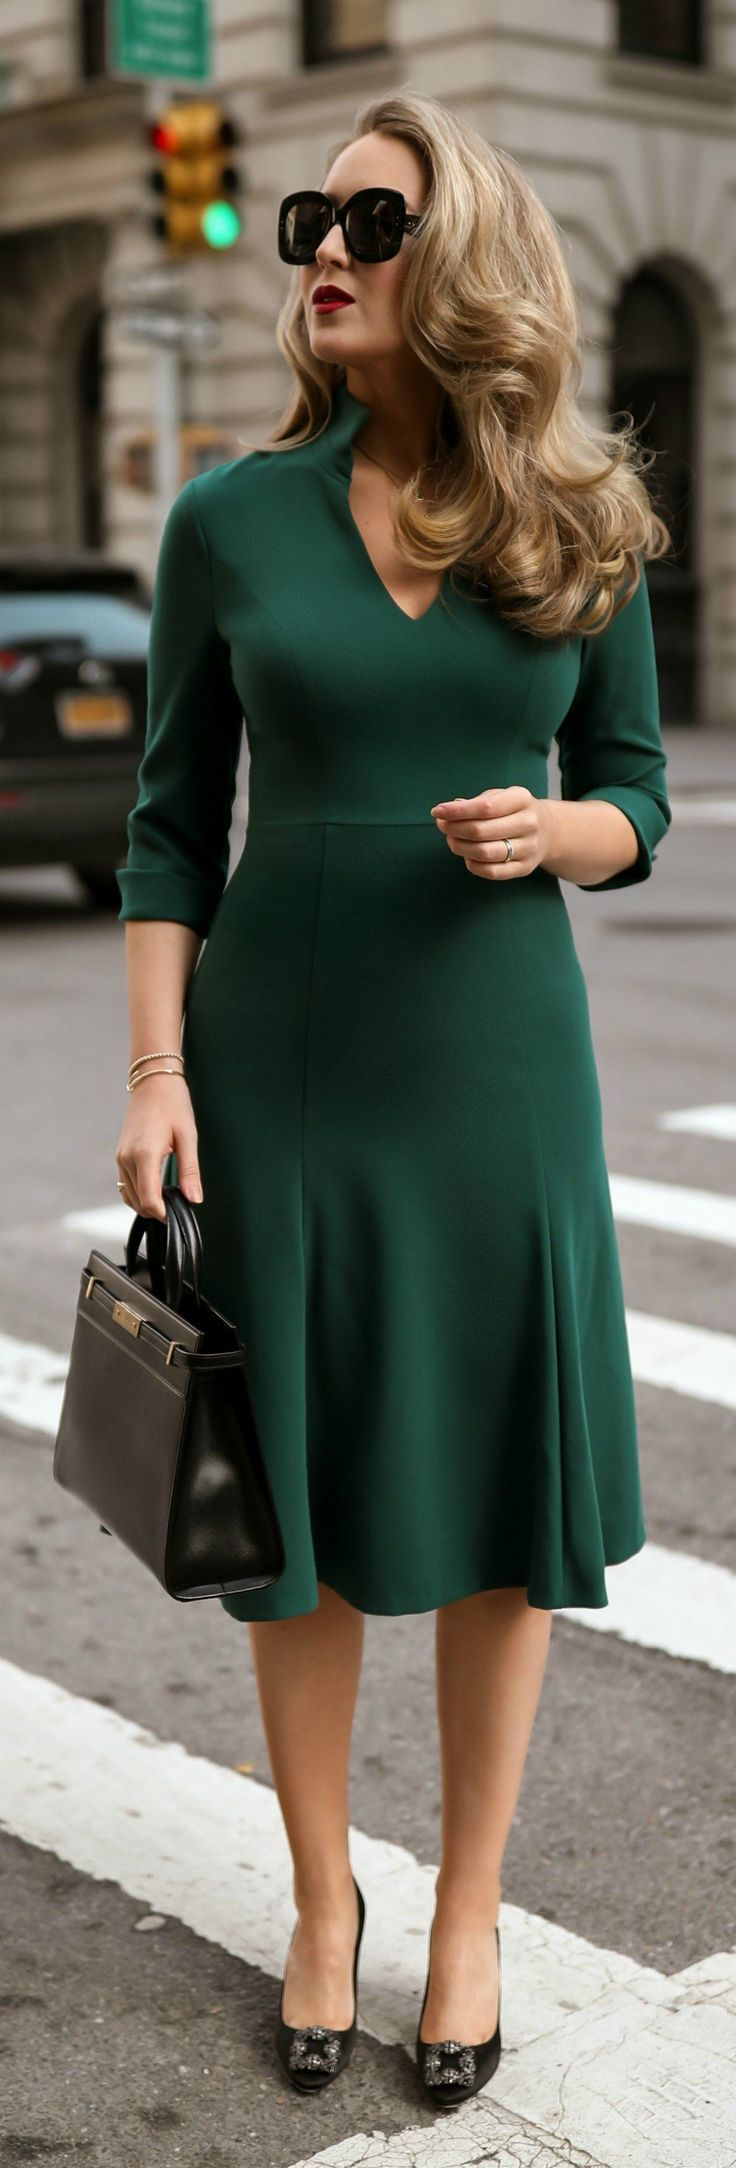 // Green woven v-neck dress with stand-up collar and 3/4 sleeves, black jeweled toe pumps, black leather handbag, black large vintage-inspired square sunglasses{ #RTR #ad #blackhalo #manoloblahnik #neimanmarcus #saintlaurent #netaporter #alaia #30Dressesin30Days #Day13 #workwear #classicstyle #rtrinsider }